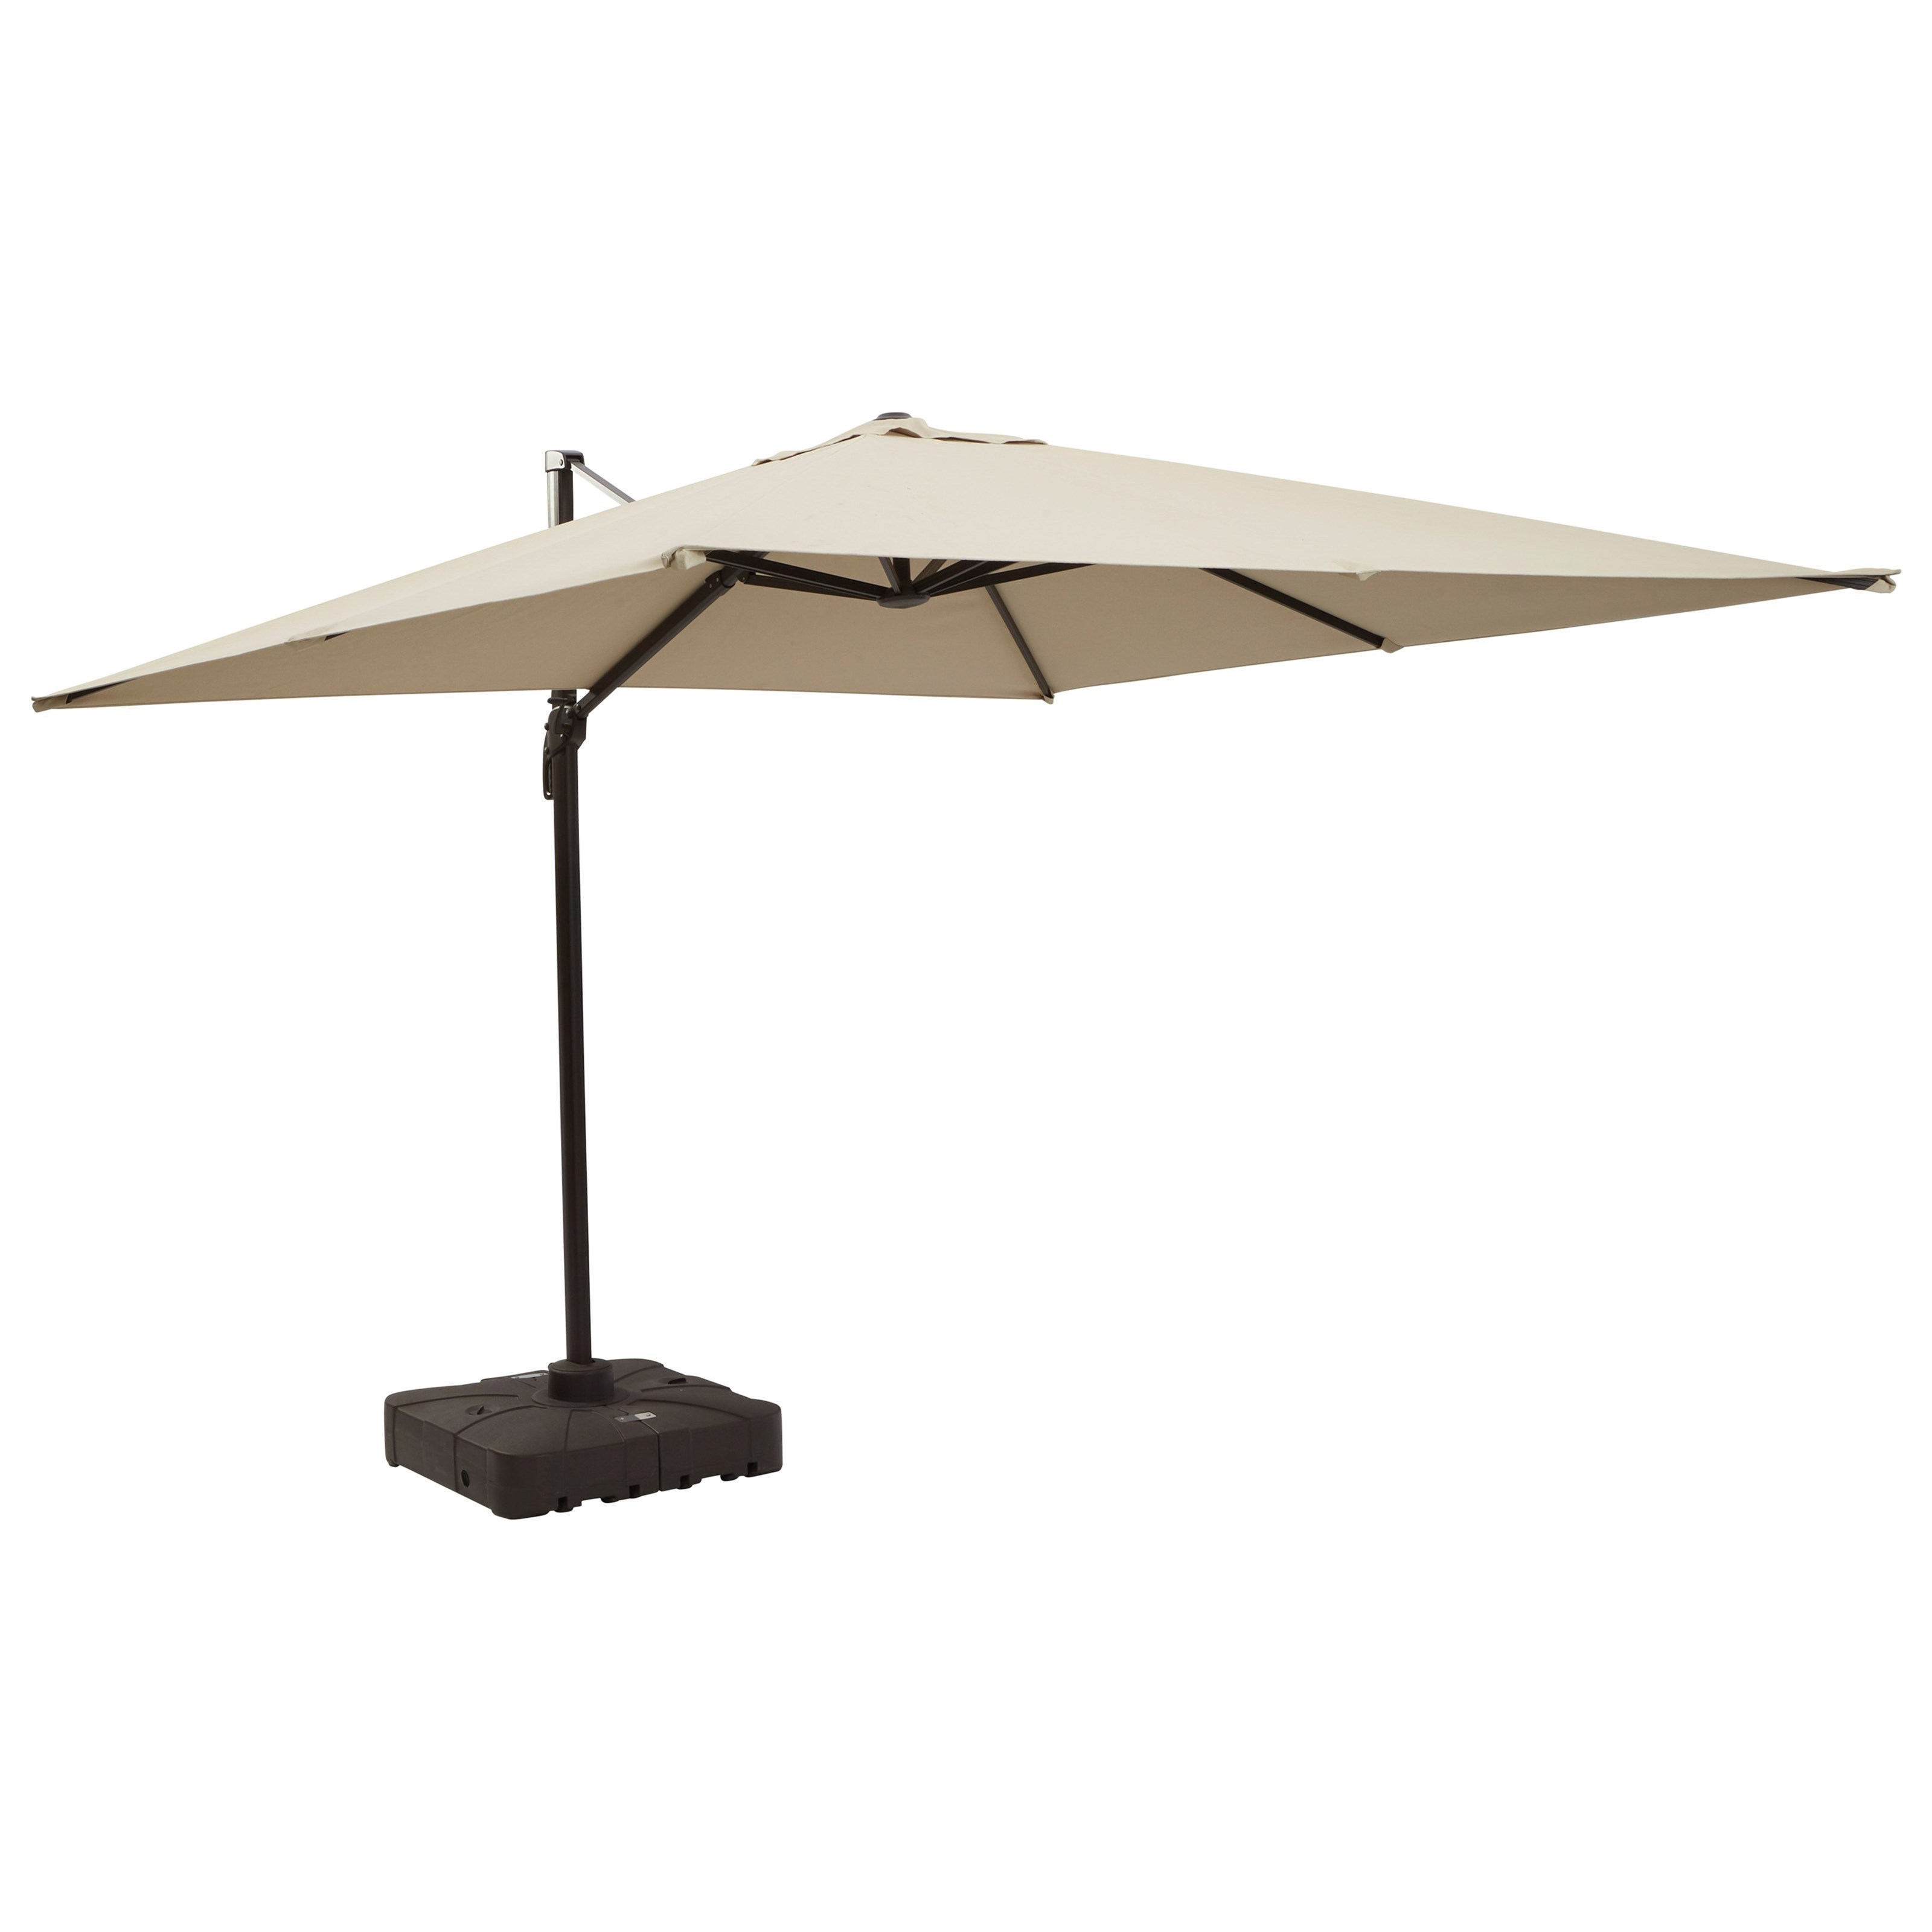 Devra Bay Large Cantilever Umbrella & Base by Ashley (Signature Design) at Johnny Janosik